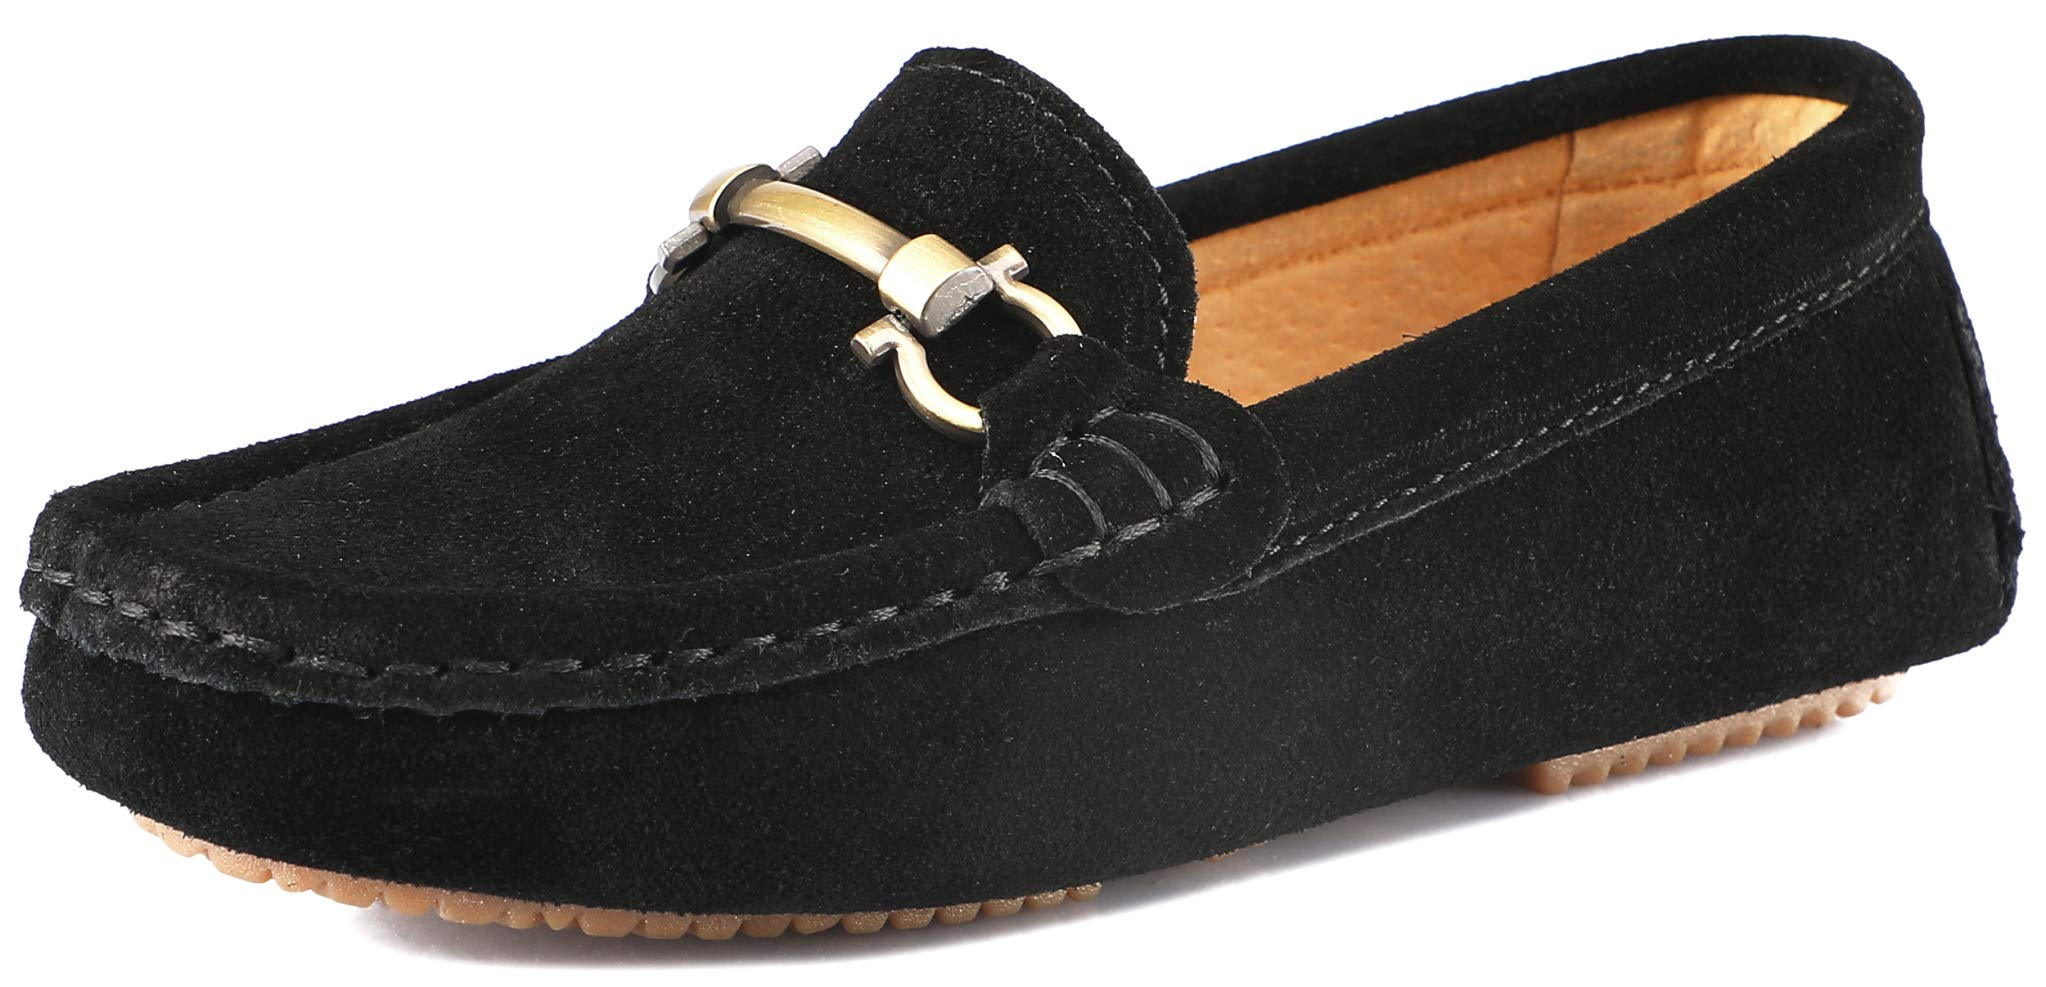 SKOEX Boy's Suede Loafers Slip On Boat Shoes US Size 10 Black(Suede)